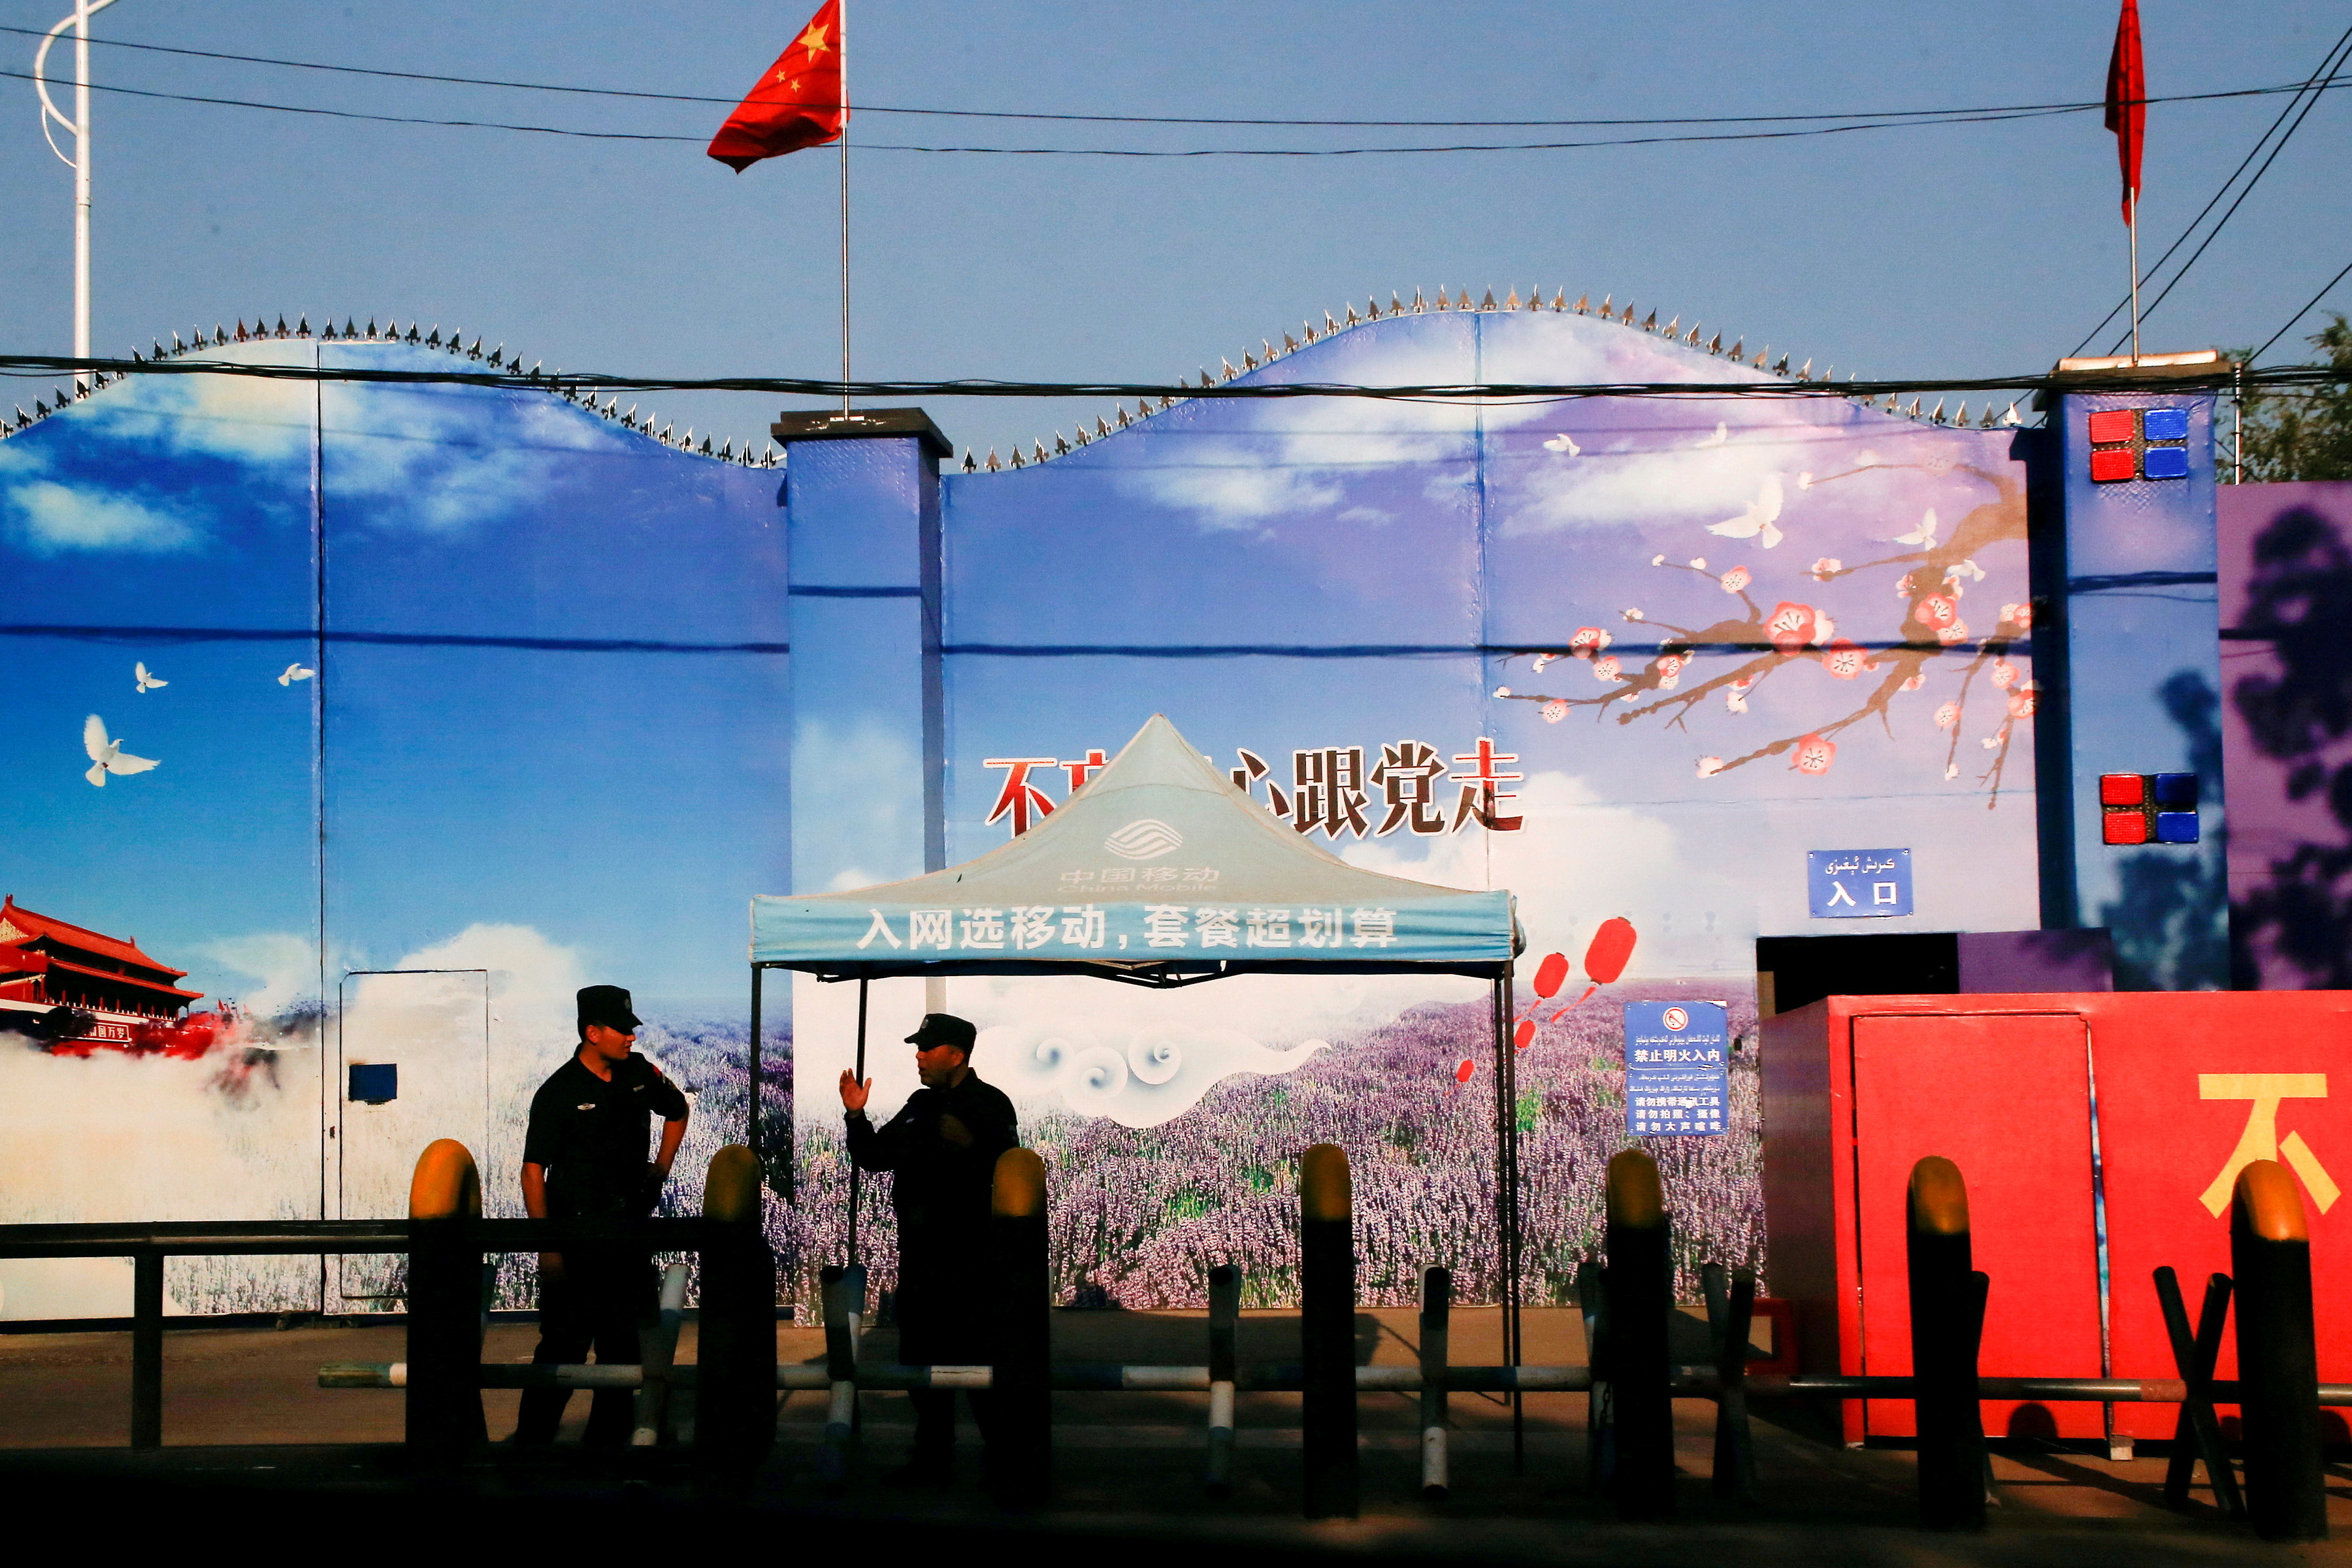 Security guards stand at the gates of what is officially known as a vocational skills education center in Huocheng County in Xinjiang Uyghur Autonomous Region, China September 3, 2018.REUTERS/Thomas Peter/File Photo